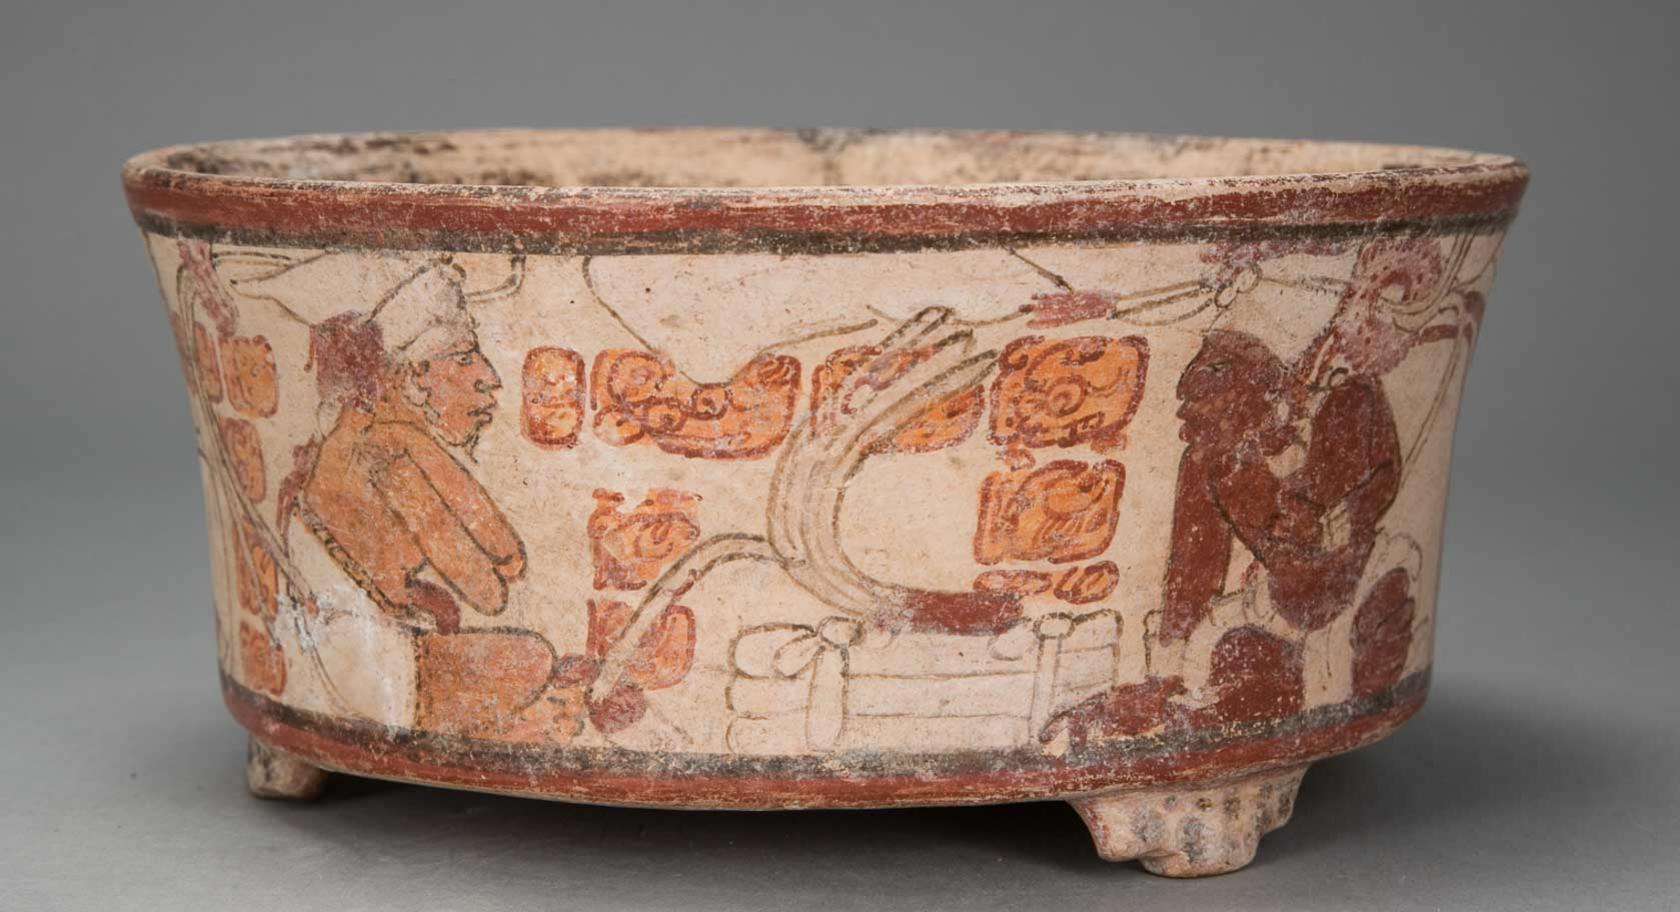 Vessel with Political Scene, Guatemala, Petén region, Maya culture, 600–900, earthenware and pigment, purchased with funds from Friends of the Art Museum, UMFA1984.002.